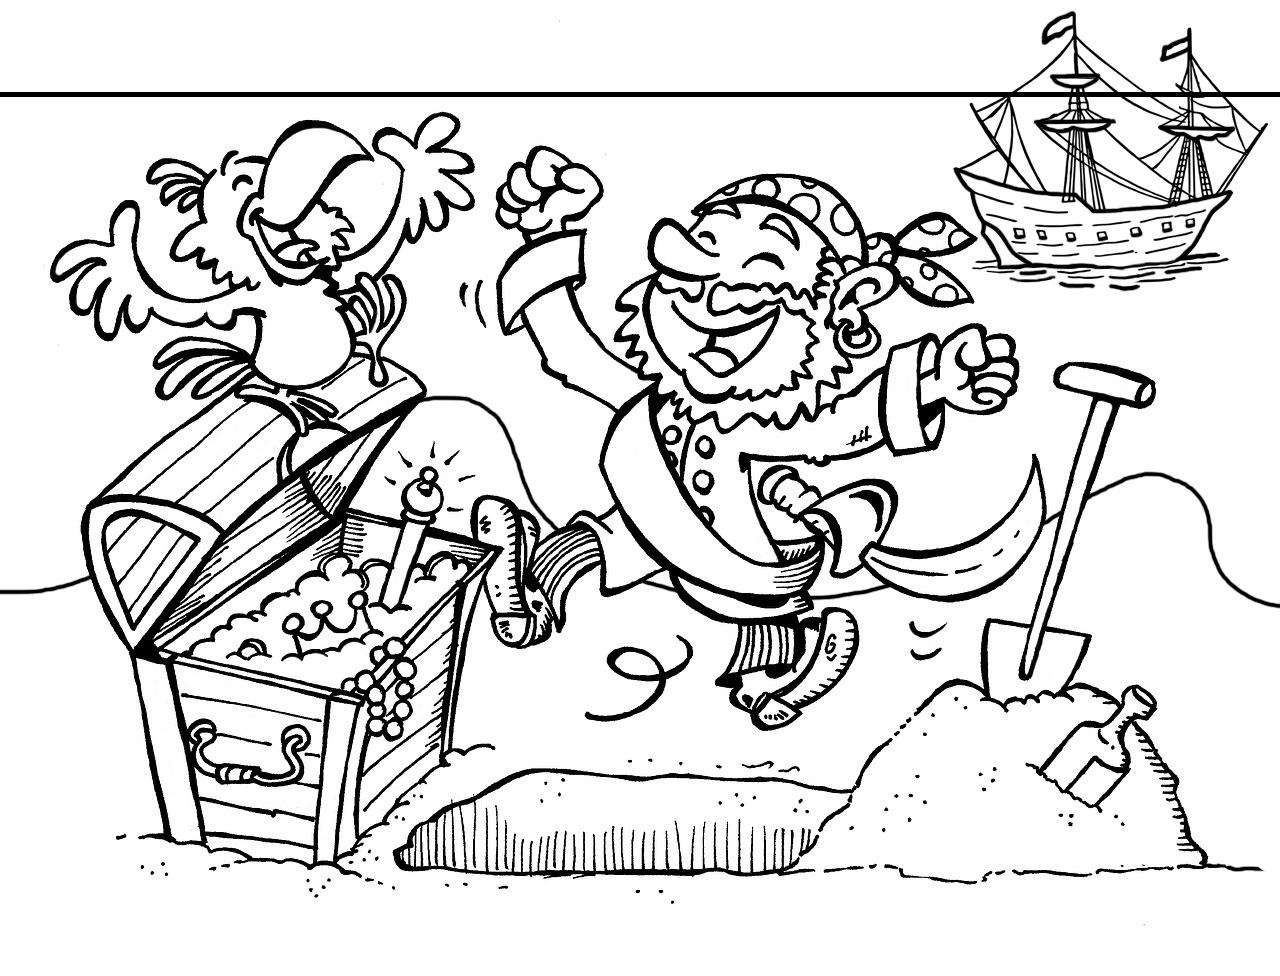 pirate parrot coloring pages pirate treasure colouring page rooftop post printables pages pirate parrot coloring